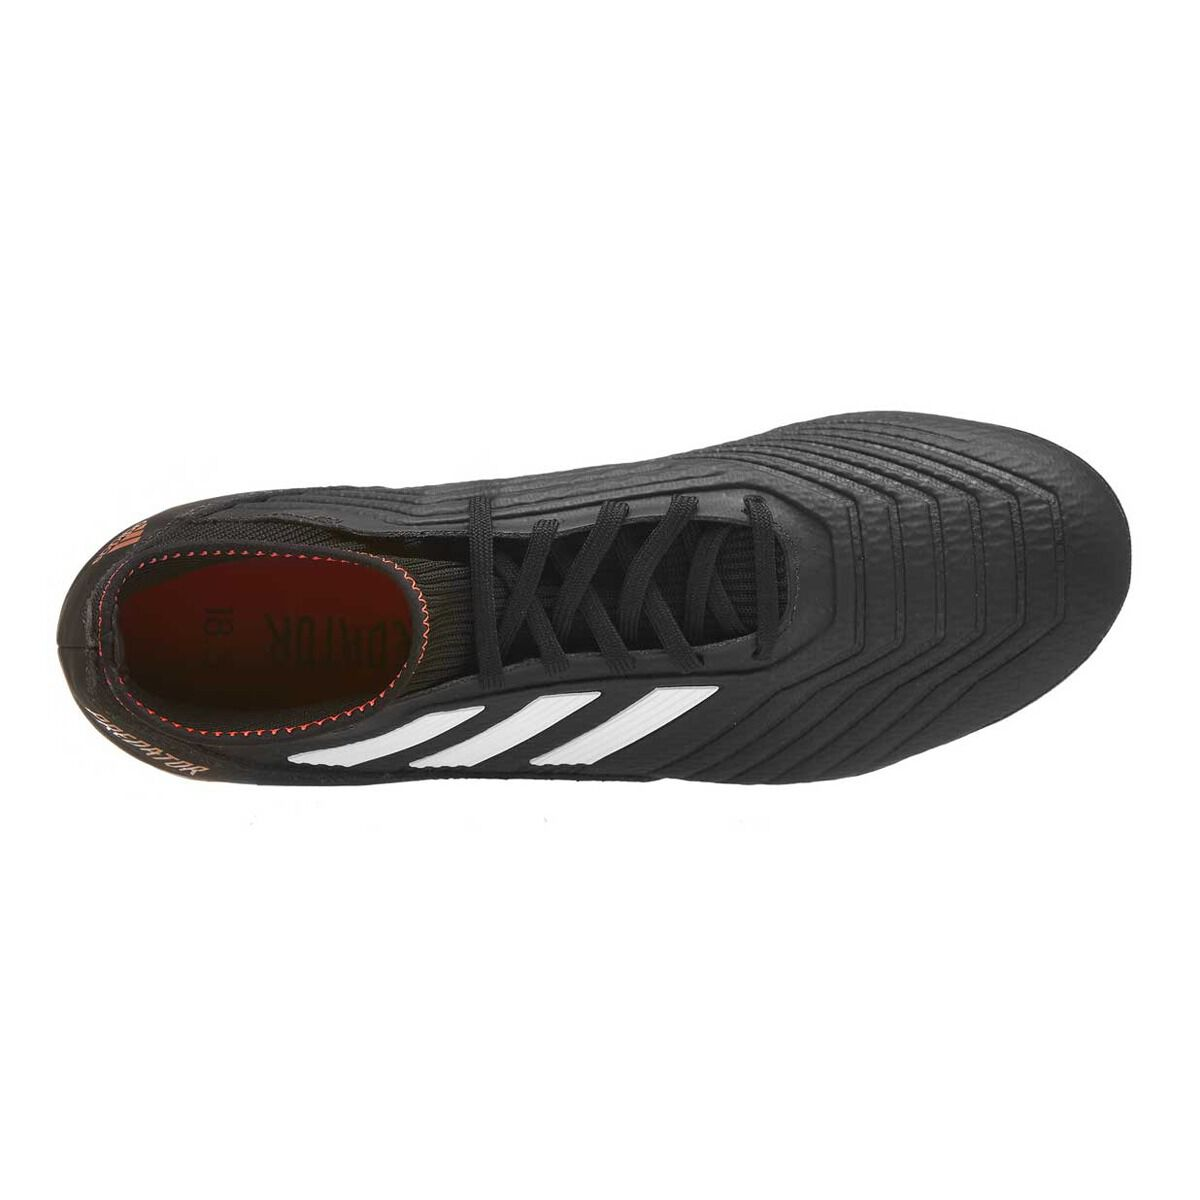 82a6d65f0046 ... uk adidas predator 18.3 mens football boots black white us 7 adult  black white f27a9 81409 ...